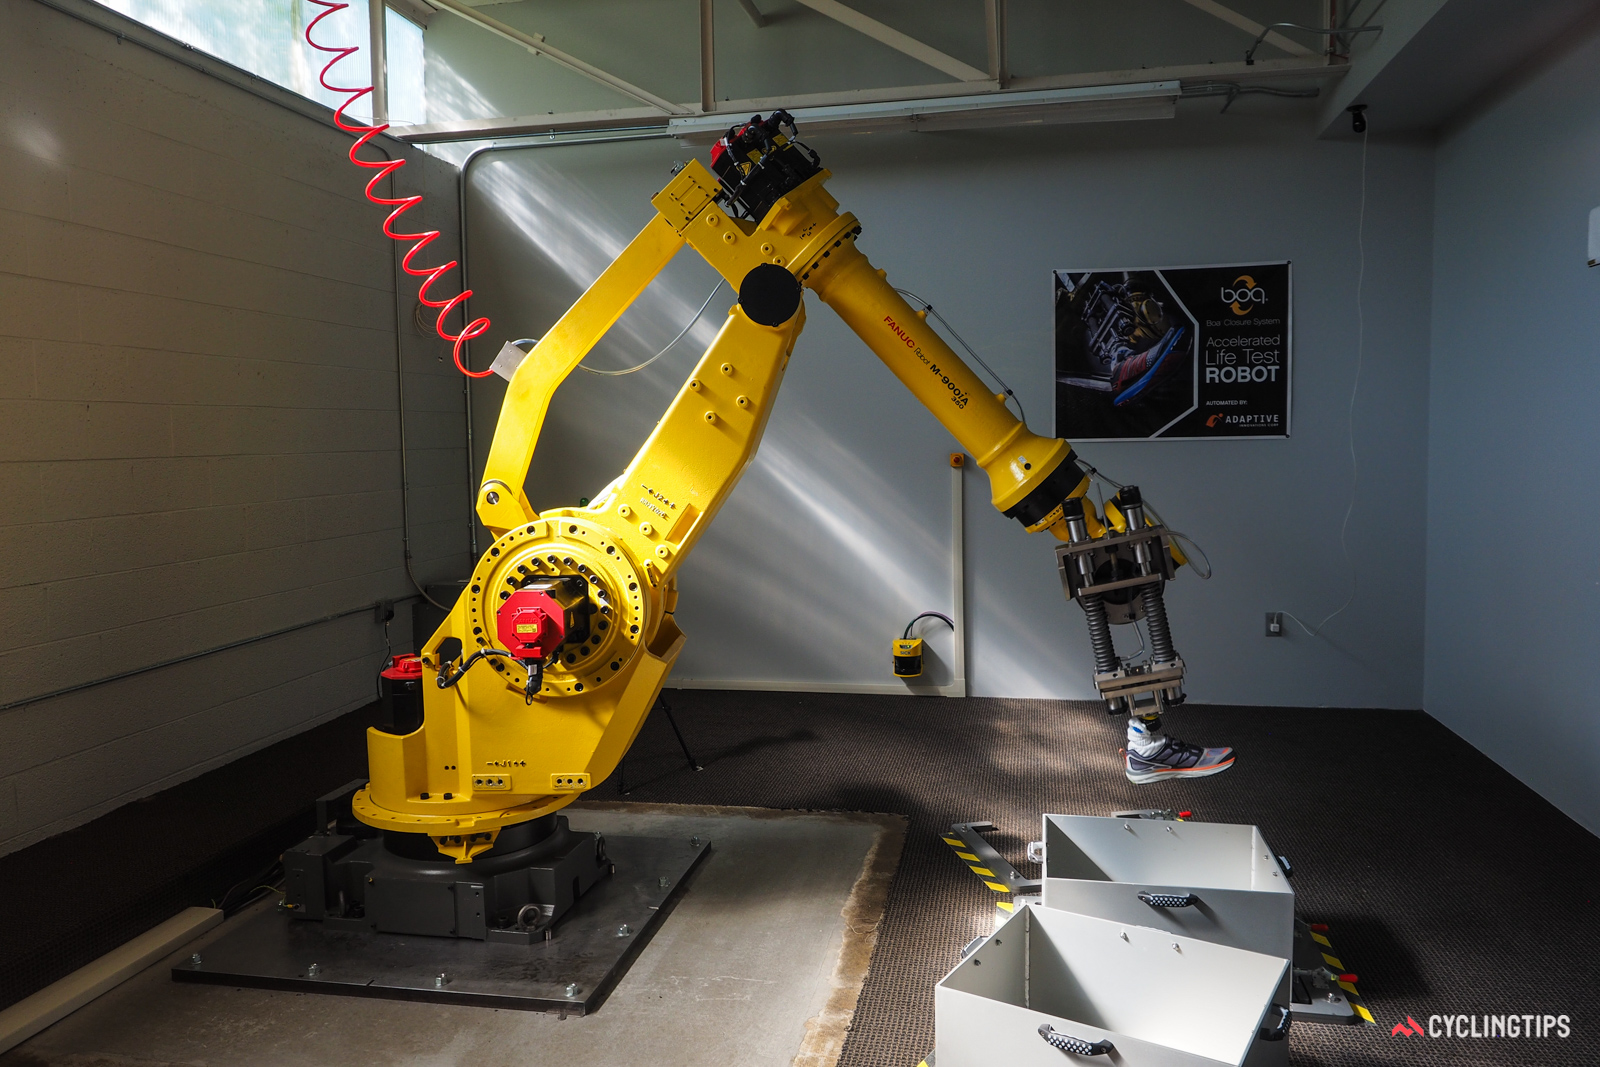 Boa recently purchased an industrial robot, which is used to simulate shoe wear. Test boxes can be filled with different media such as sand, dirt, and concrete.